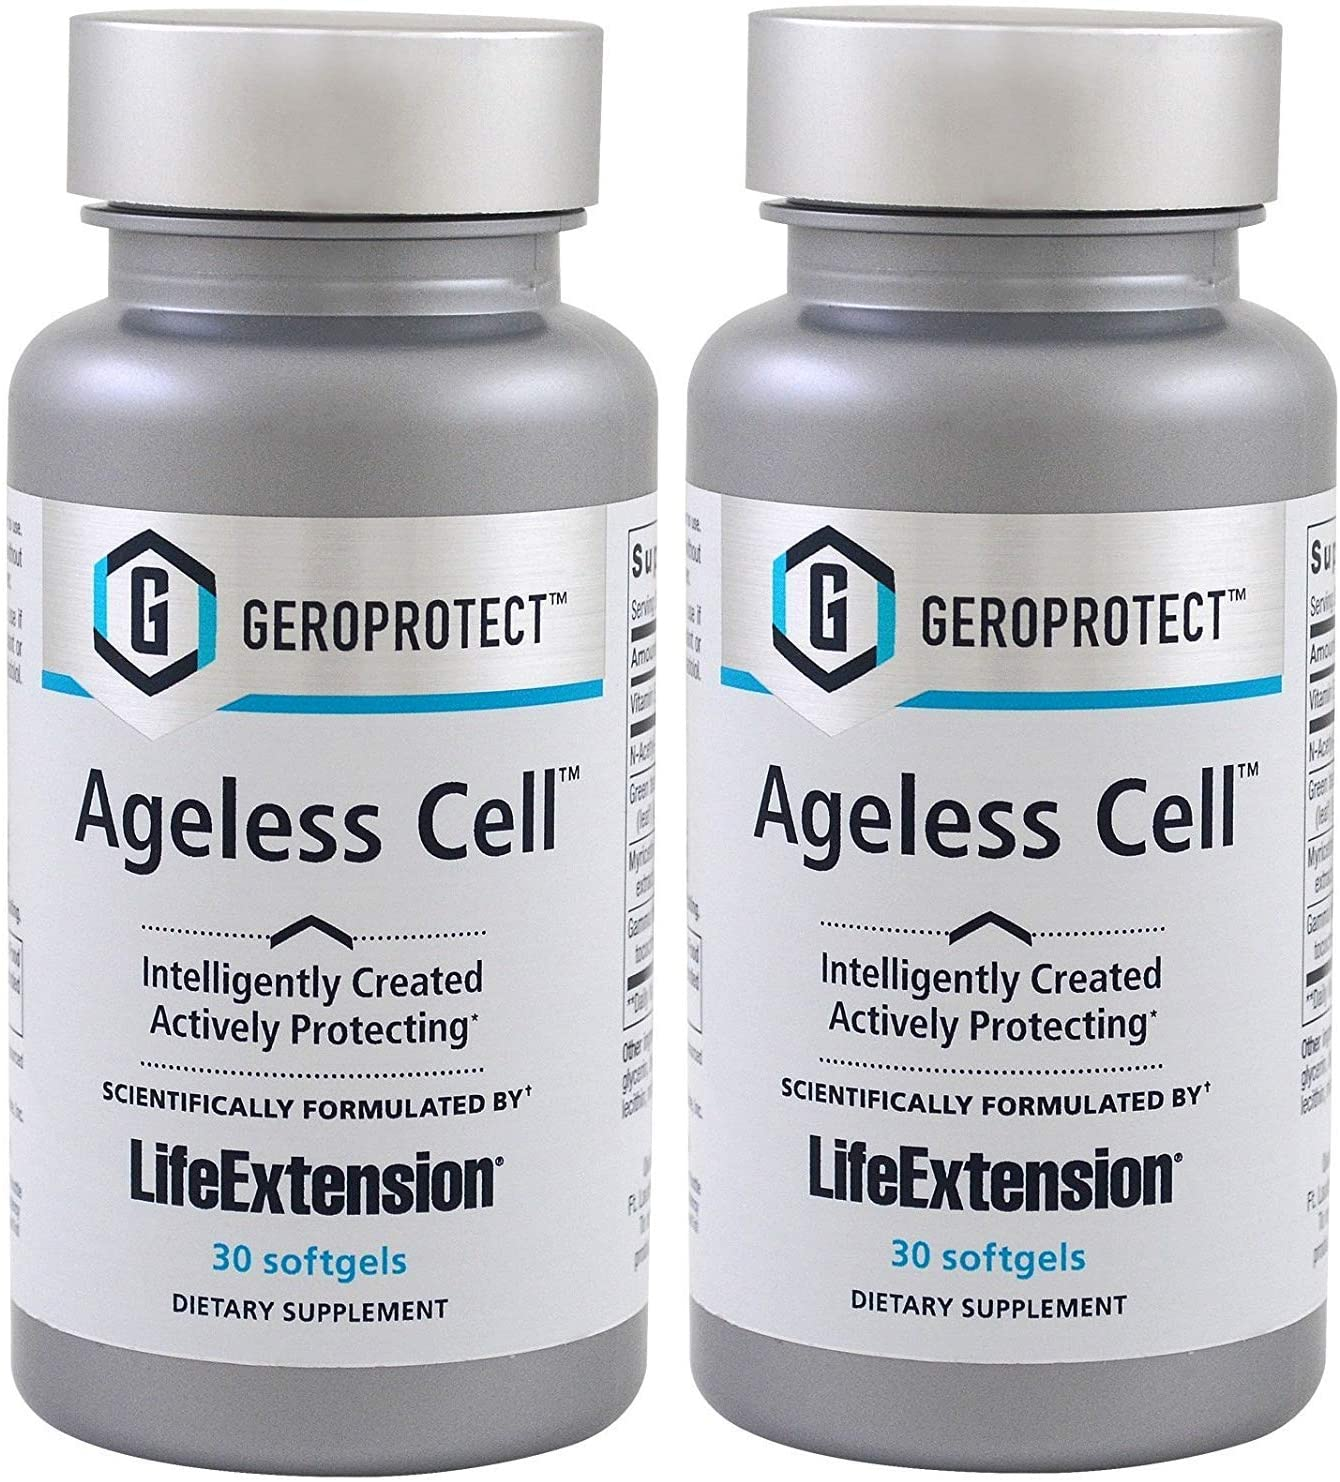 Life Extension GEROPROTECT Ageless Cell - 30 Softgels (2 Pack) - Accudata Marketing Group, LLC